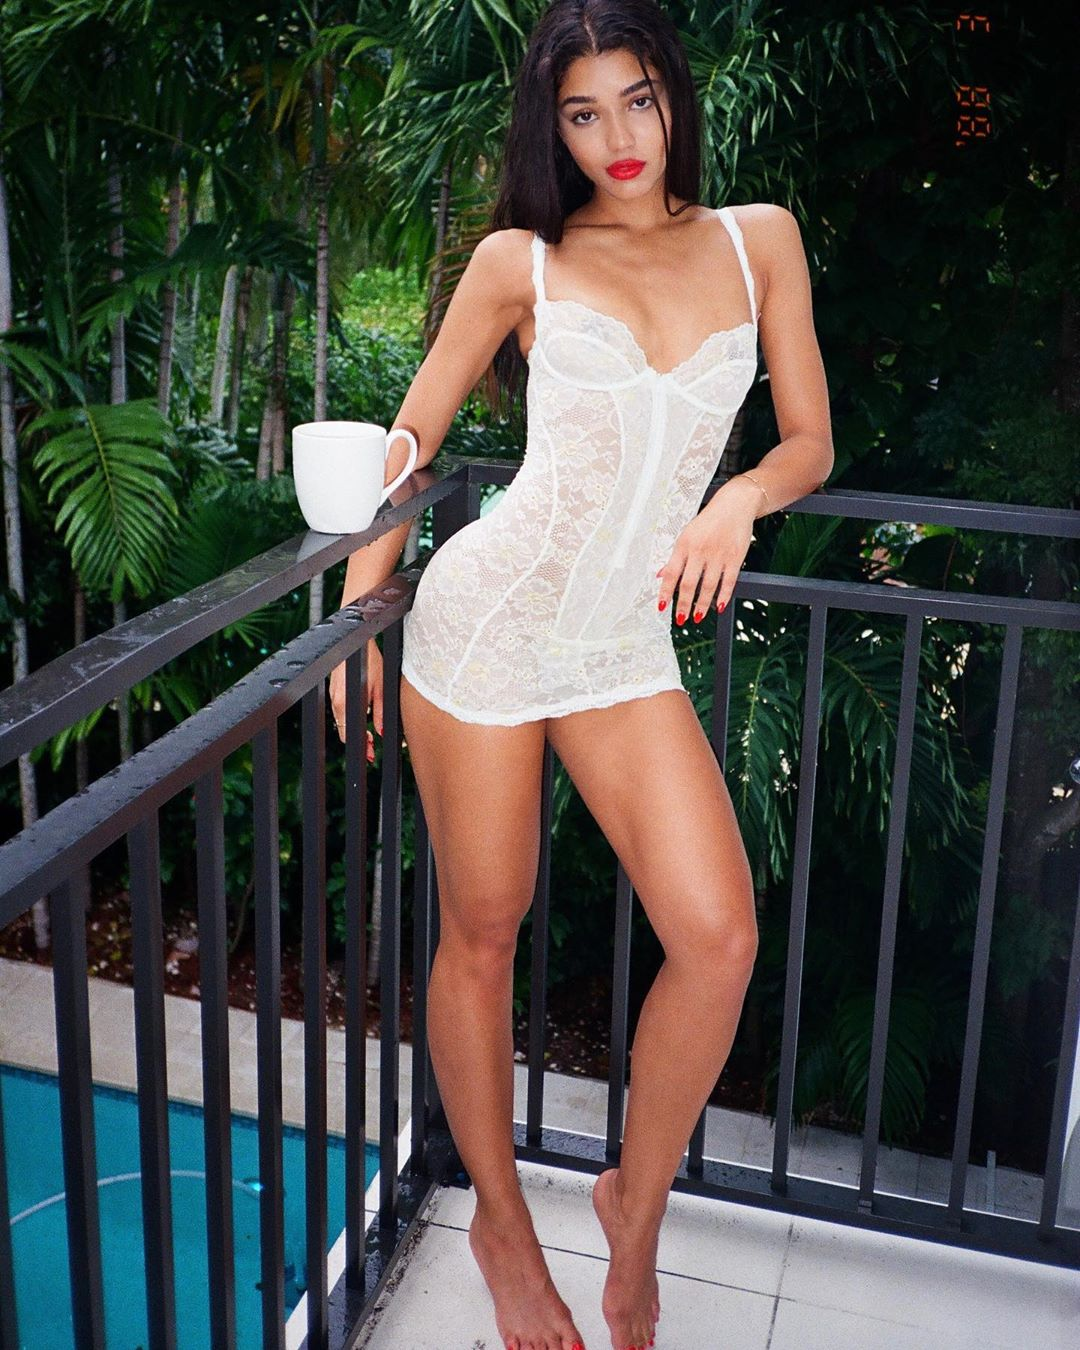 Yovanna Ventura rocking a White floral lace Savage X Fenty by Rihanna teddy with a lace detailing fabric, floral print, a very low cut sweetheart neckline and spaghetti straps